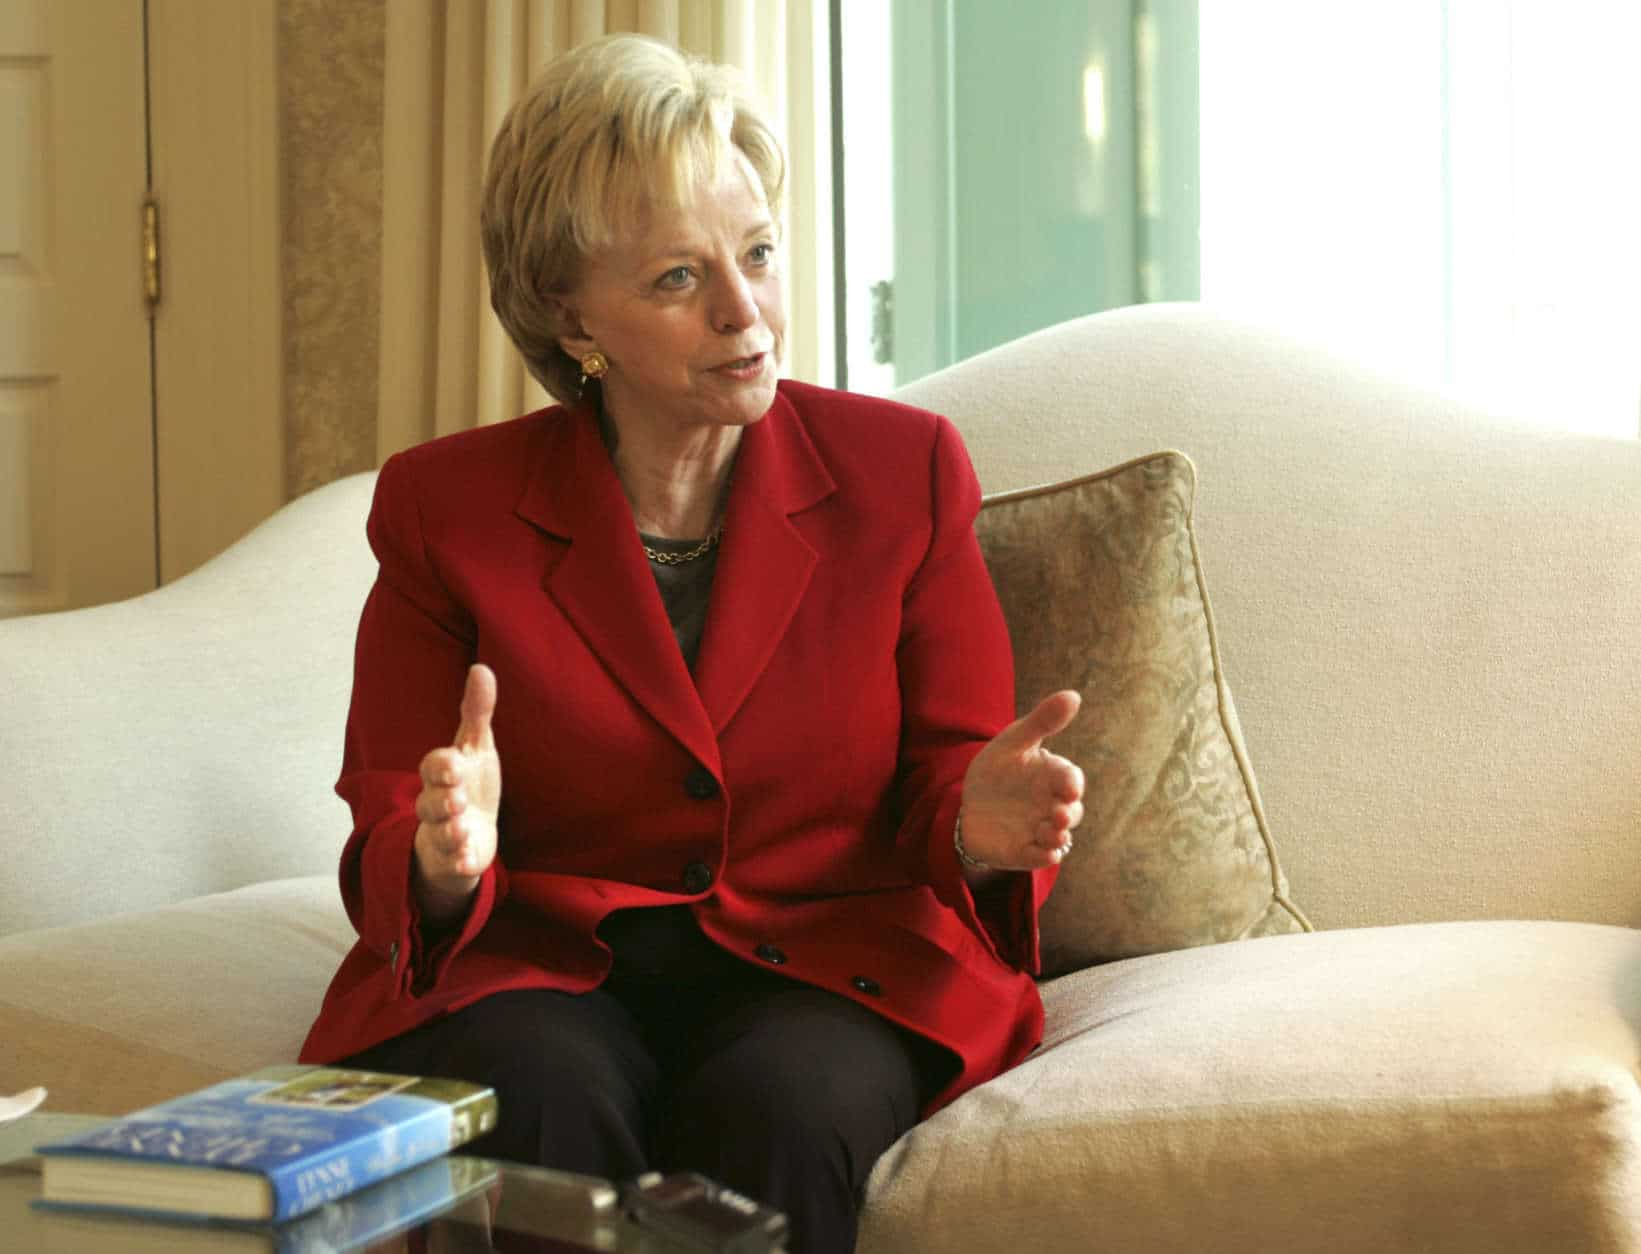 """Lynne Cheney, wife of Vice President Dick Cheney, talks about her new book """"Blue Skies, No Fences,""""  Wednesday, Oct. 17, 2007, at the vice president's residence in Washington. (AP Photo/Lawrence Jackson)"""